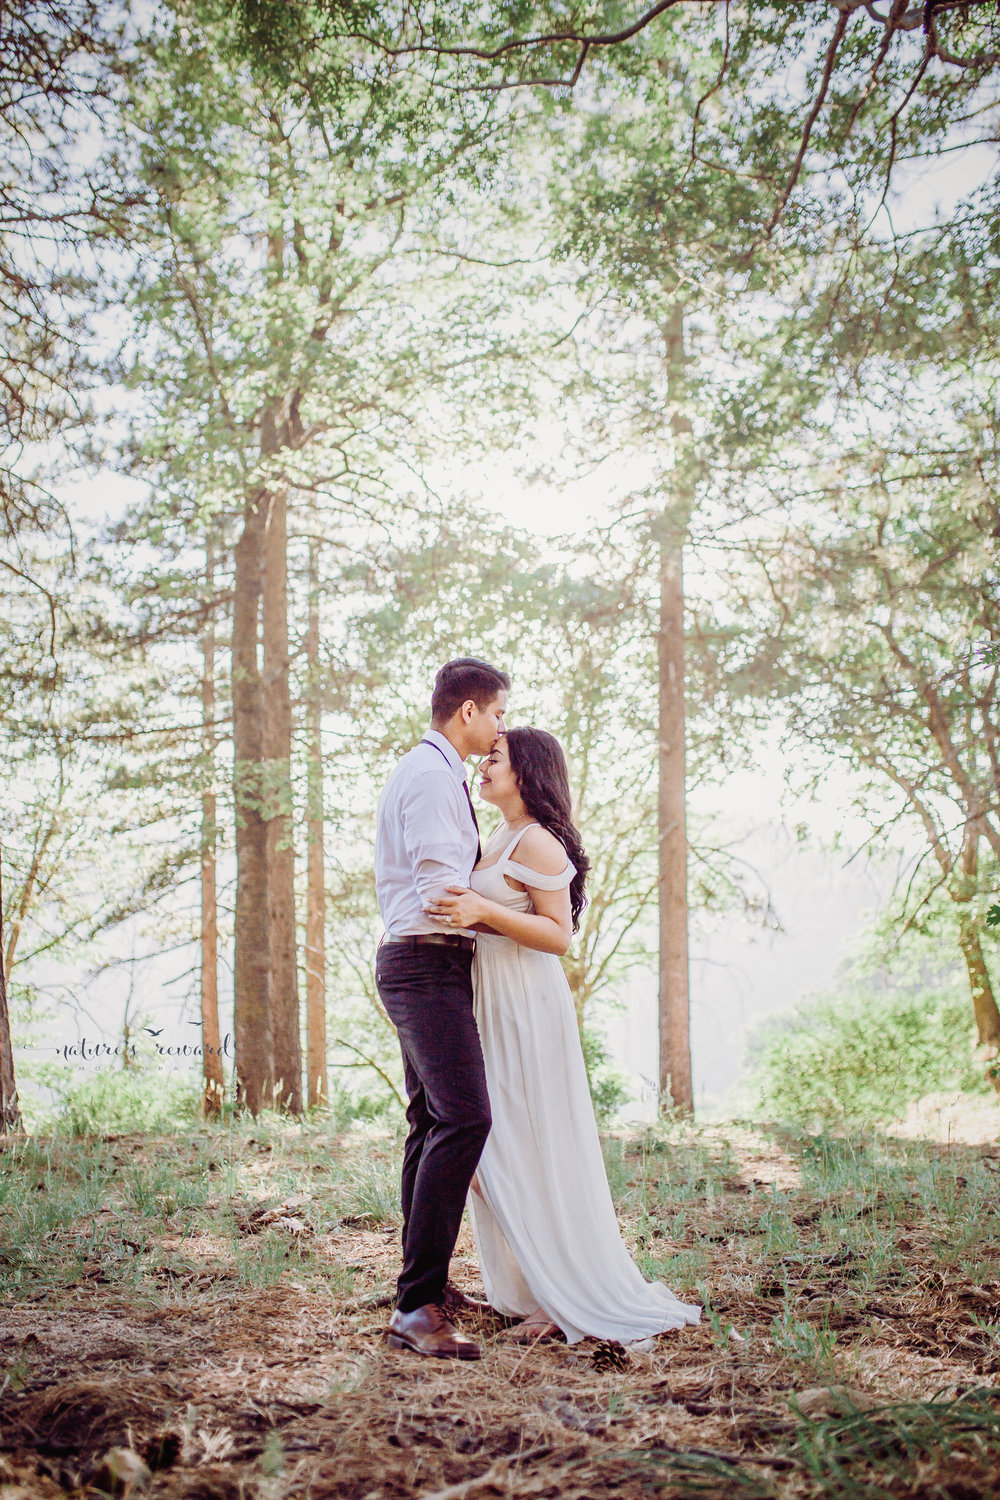 It looks like the branches of these trees are bursting into fireworks behind them in this bride and groom portrait by Nature's Reward Photography